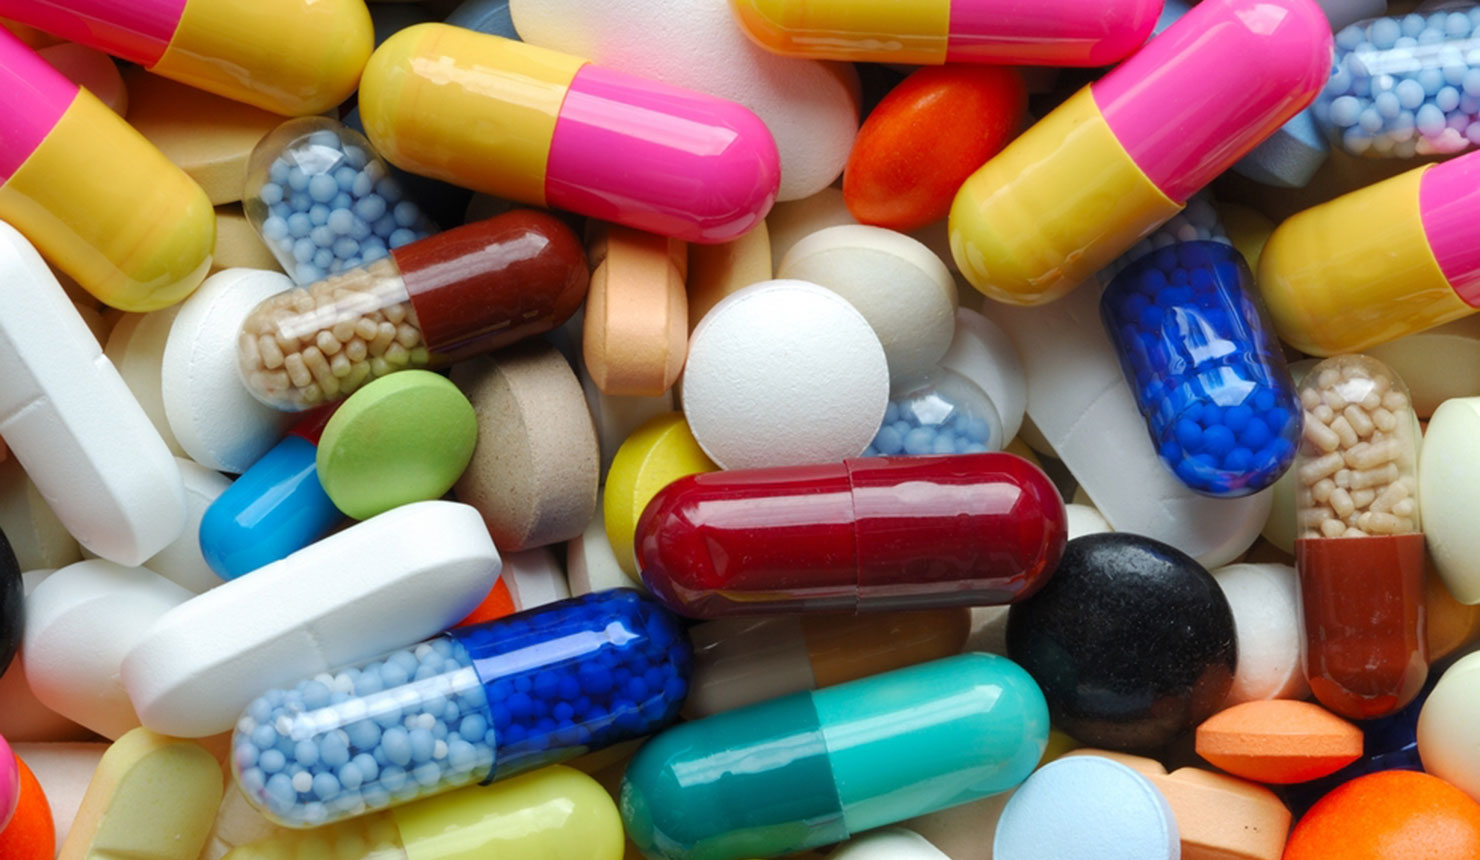 Event:  Commercialization of Pharmaceutical Drugs